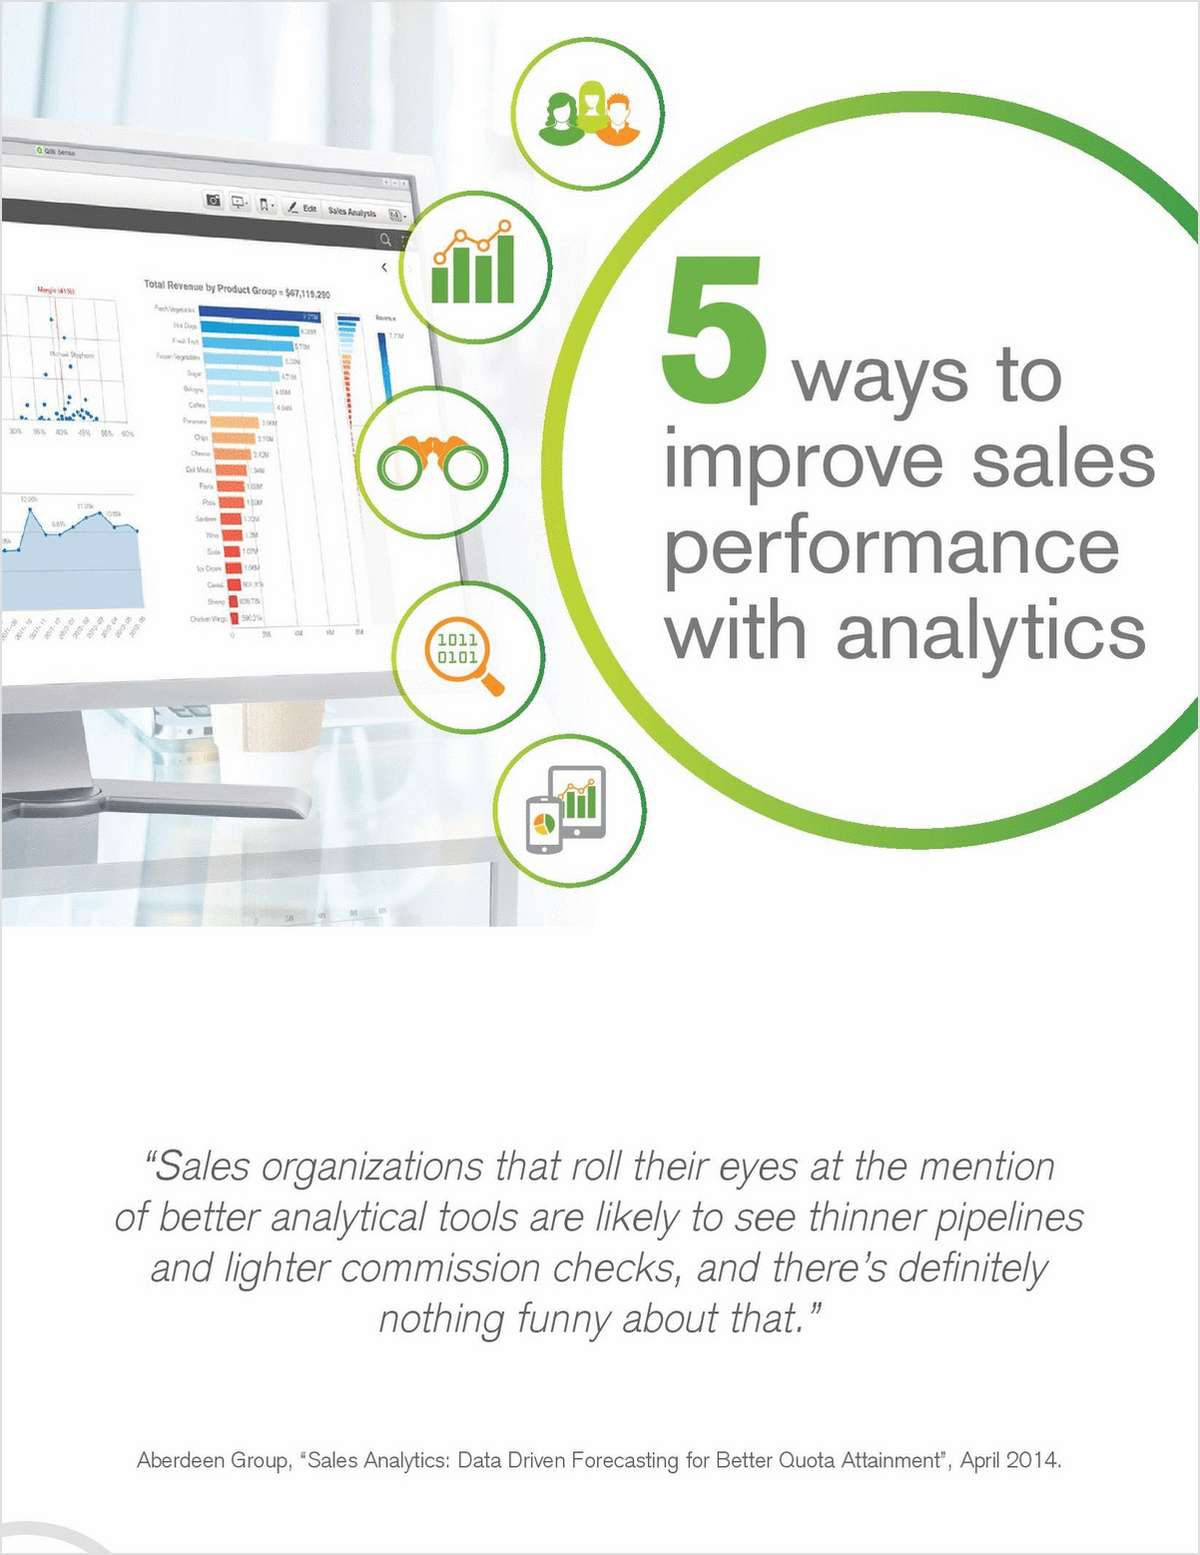 5 Ways to Improve Sales Performance with Analytics